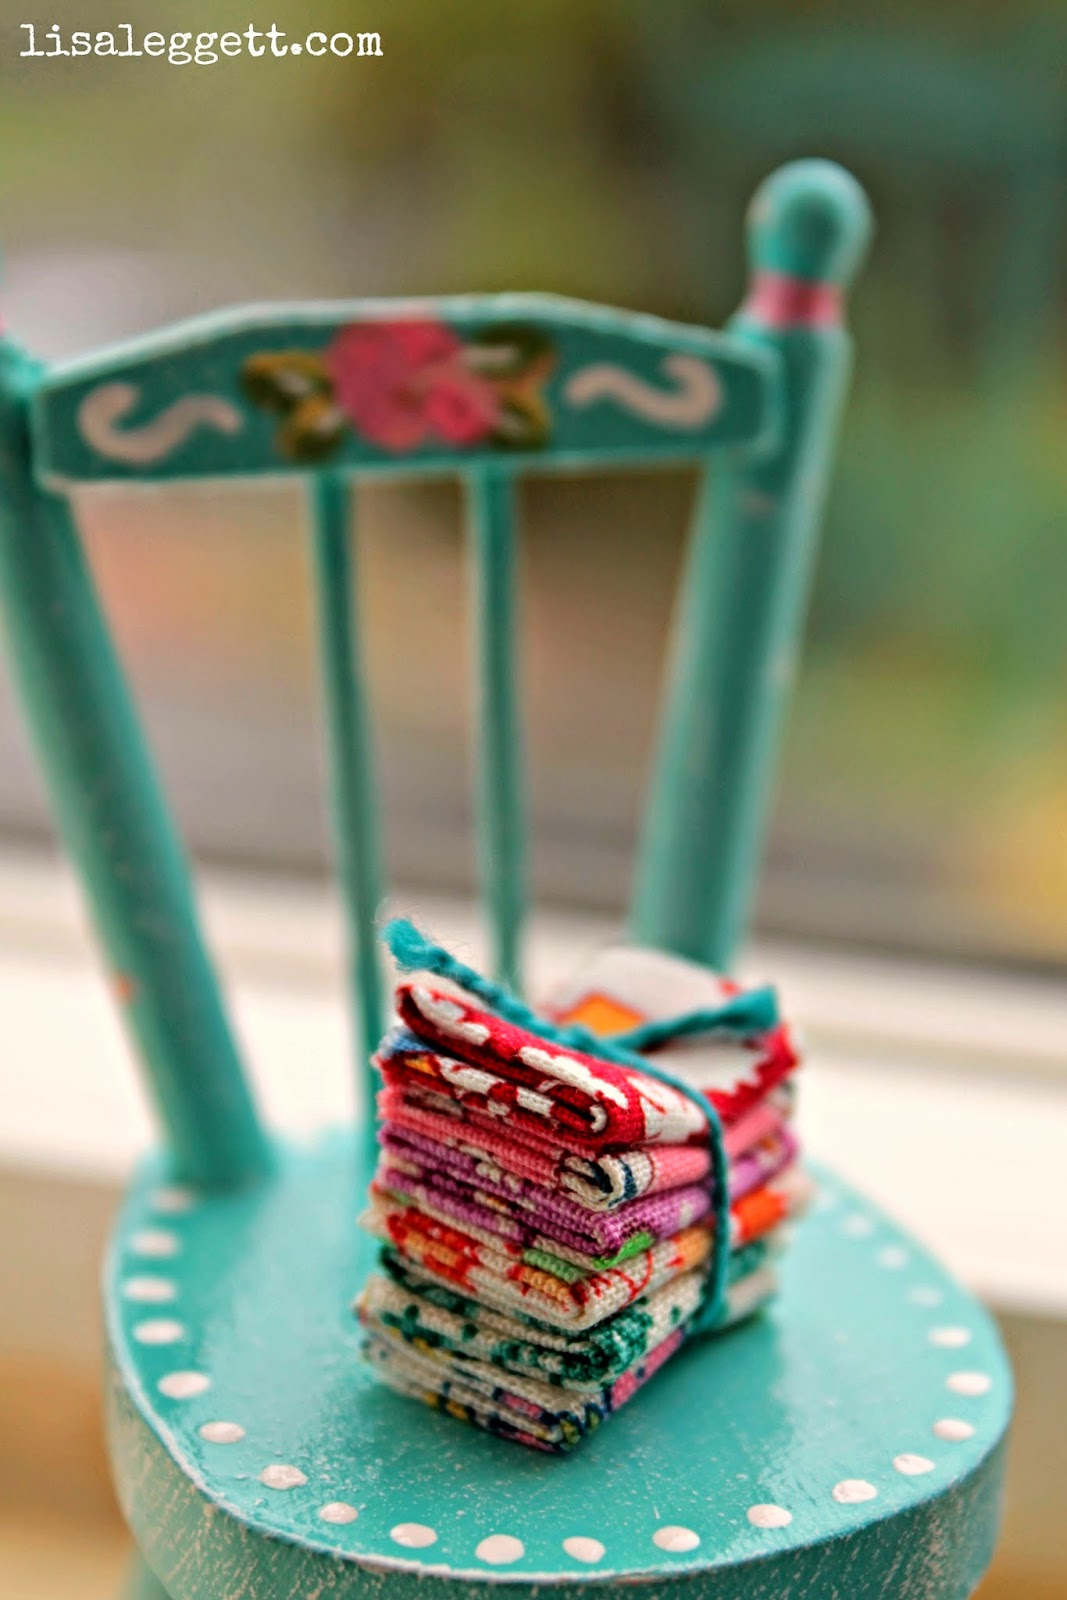 Mini Fat Quarters stack by Lisa Leggett